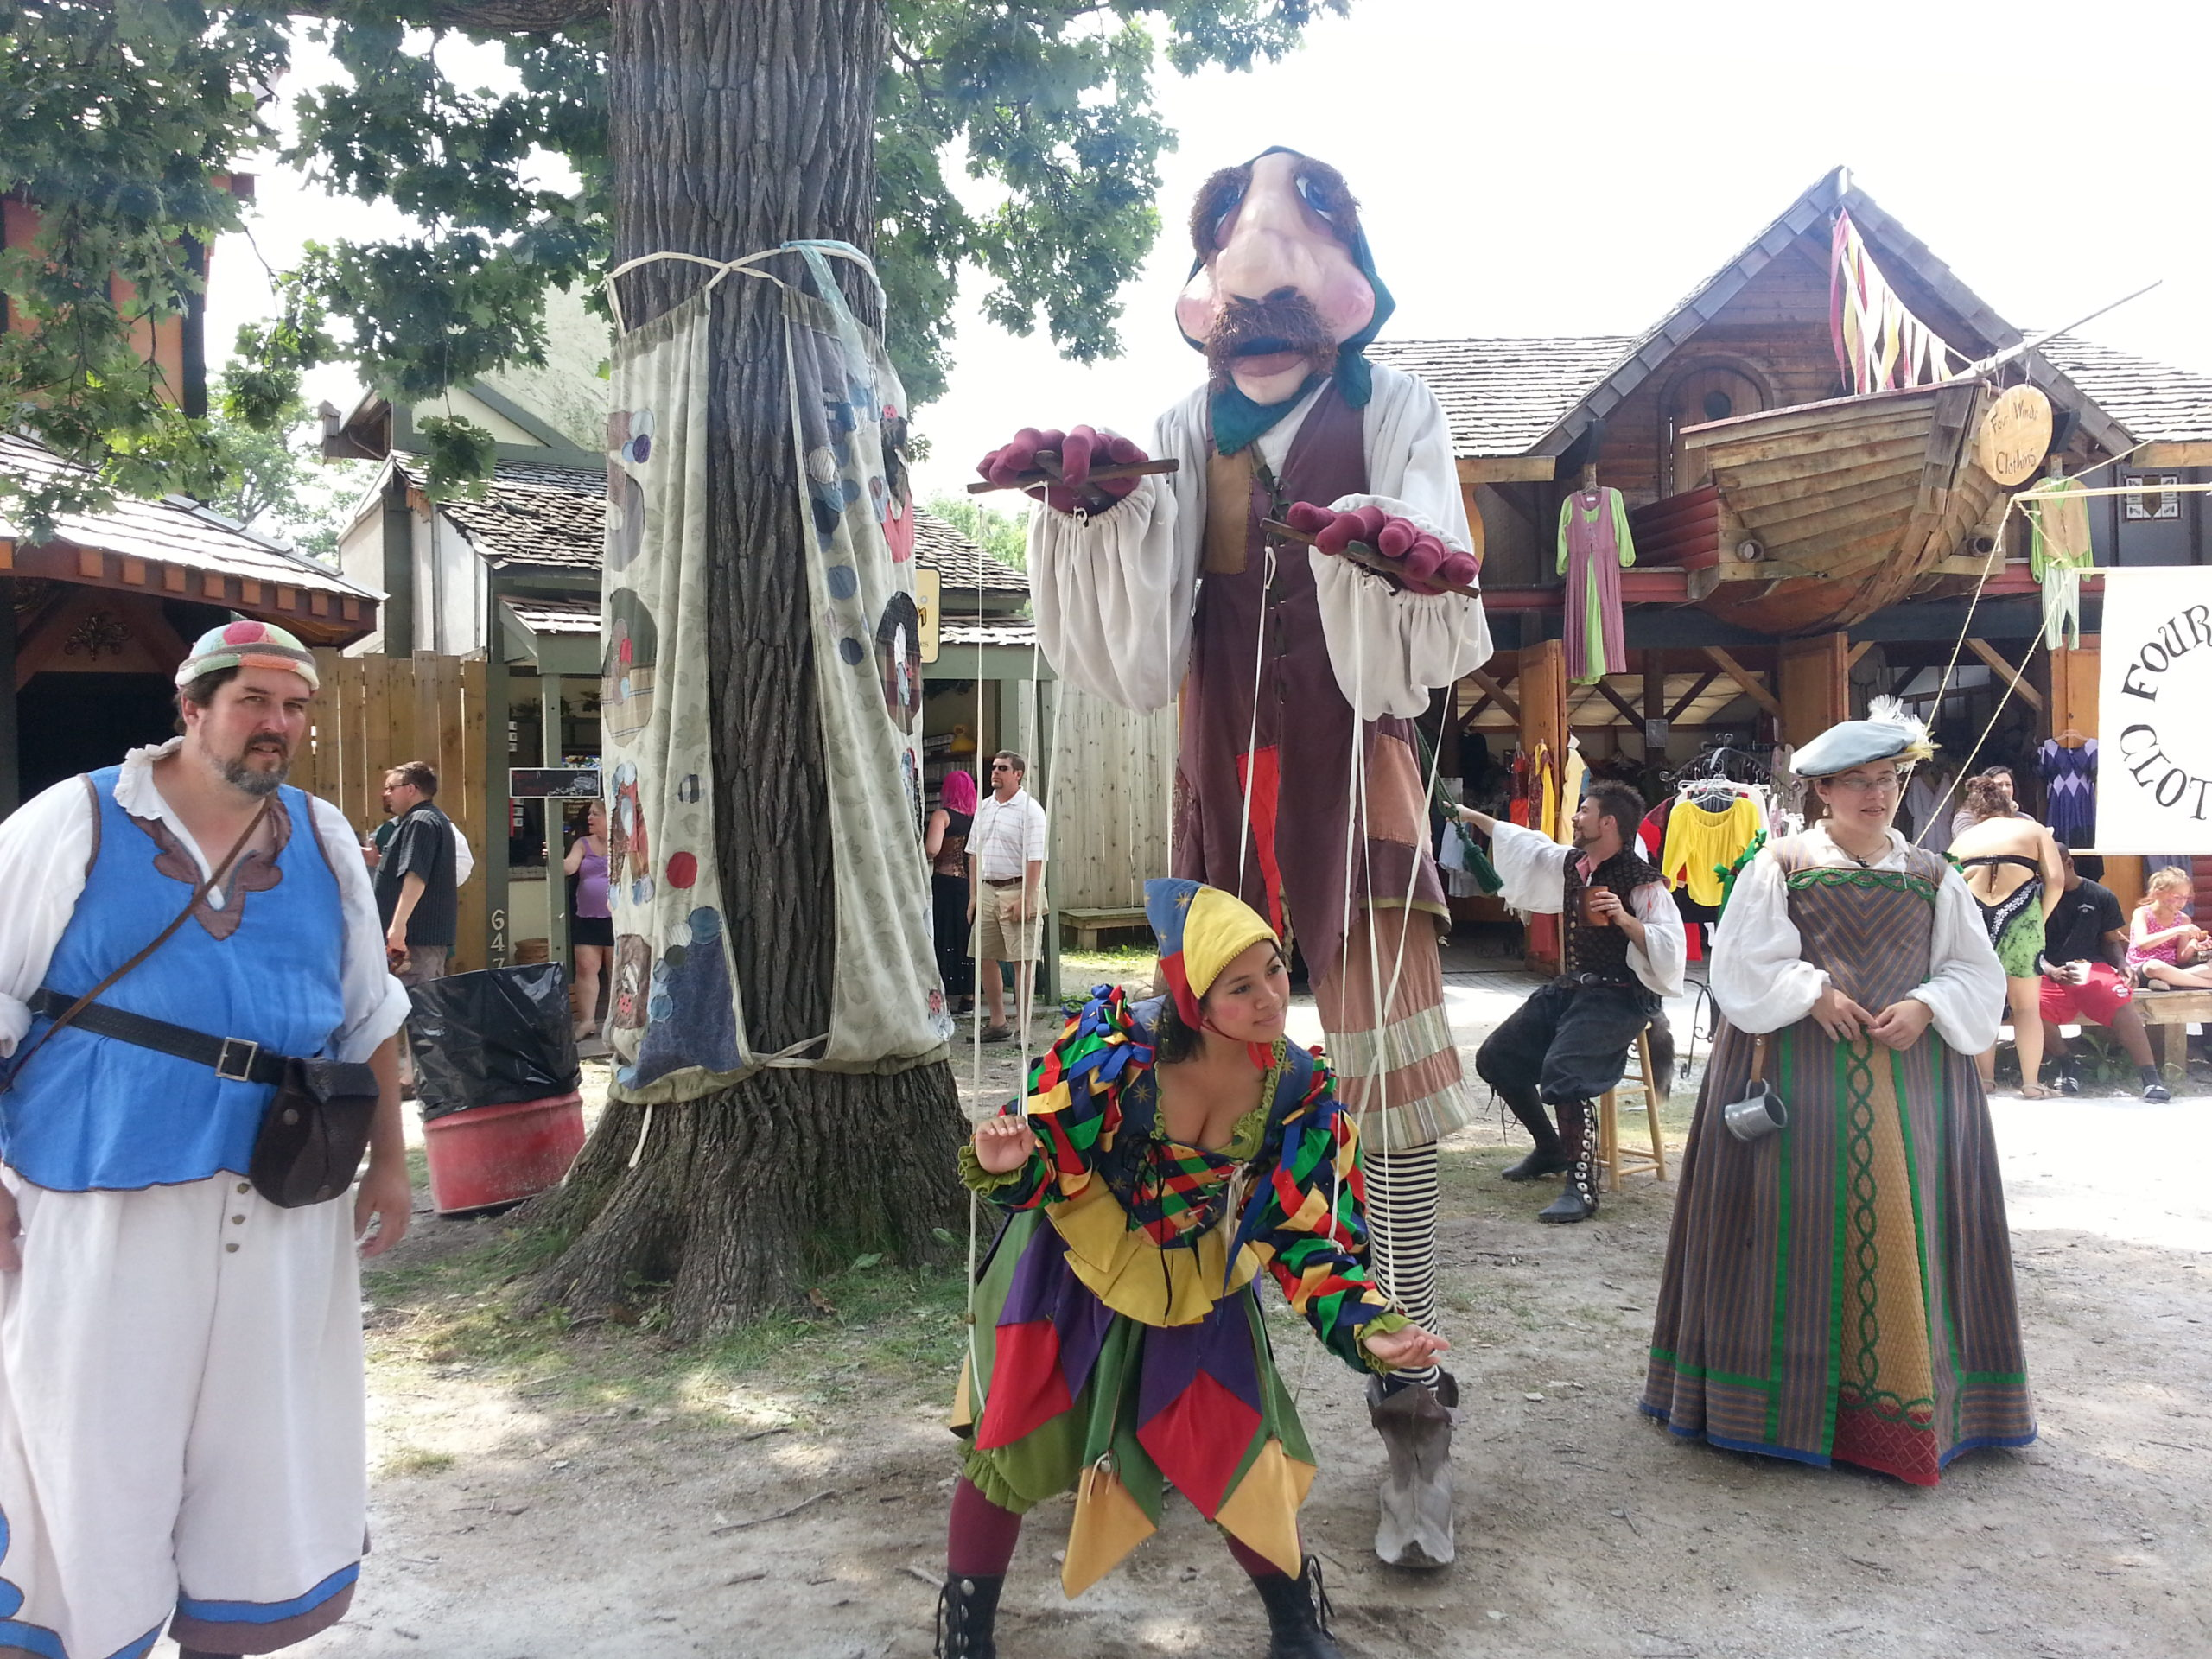 Renaissance Fairs: I Forgot To Show You My Day At Bristol Renaissance Faire